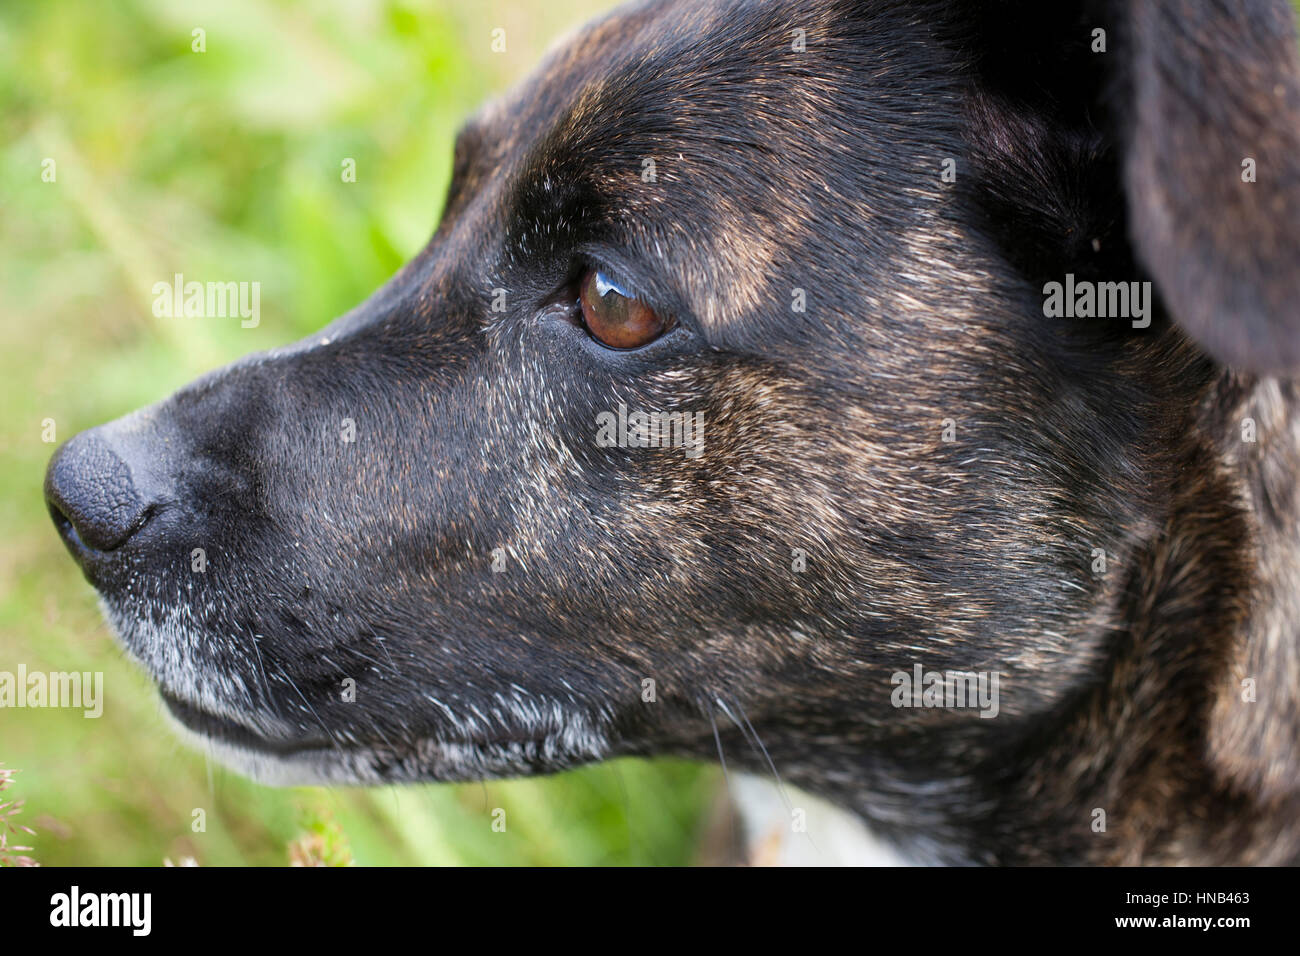 Brindle Staffy X breed dog - Stock Image